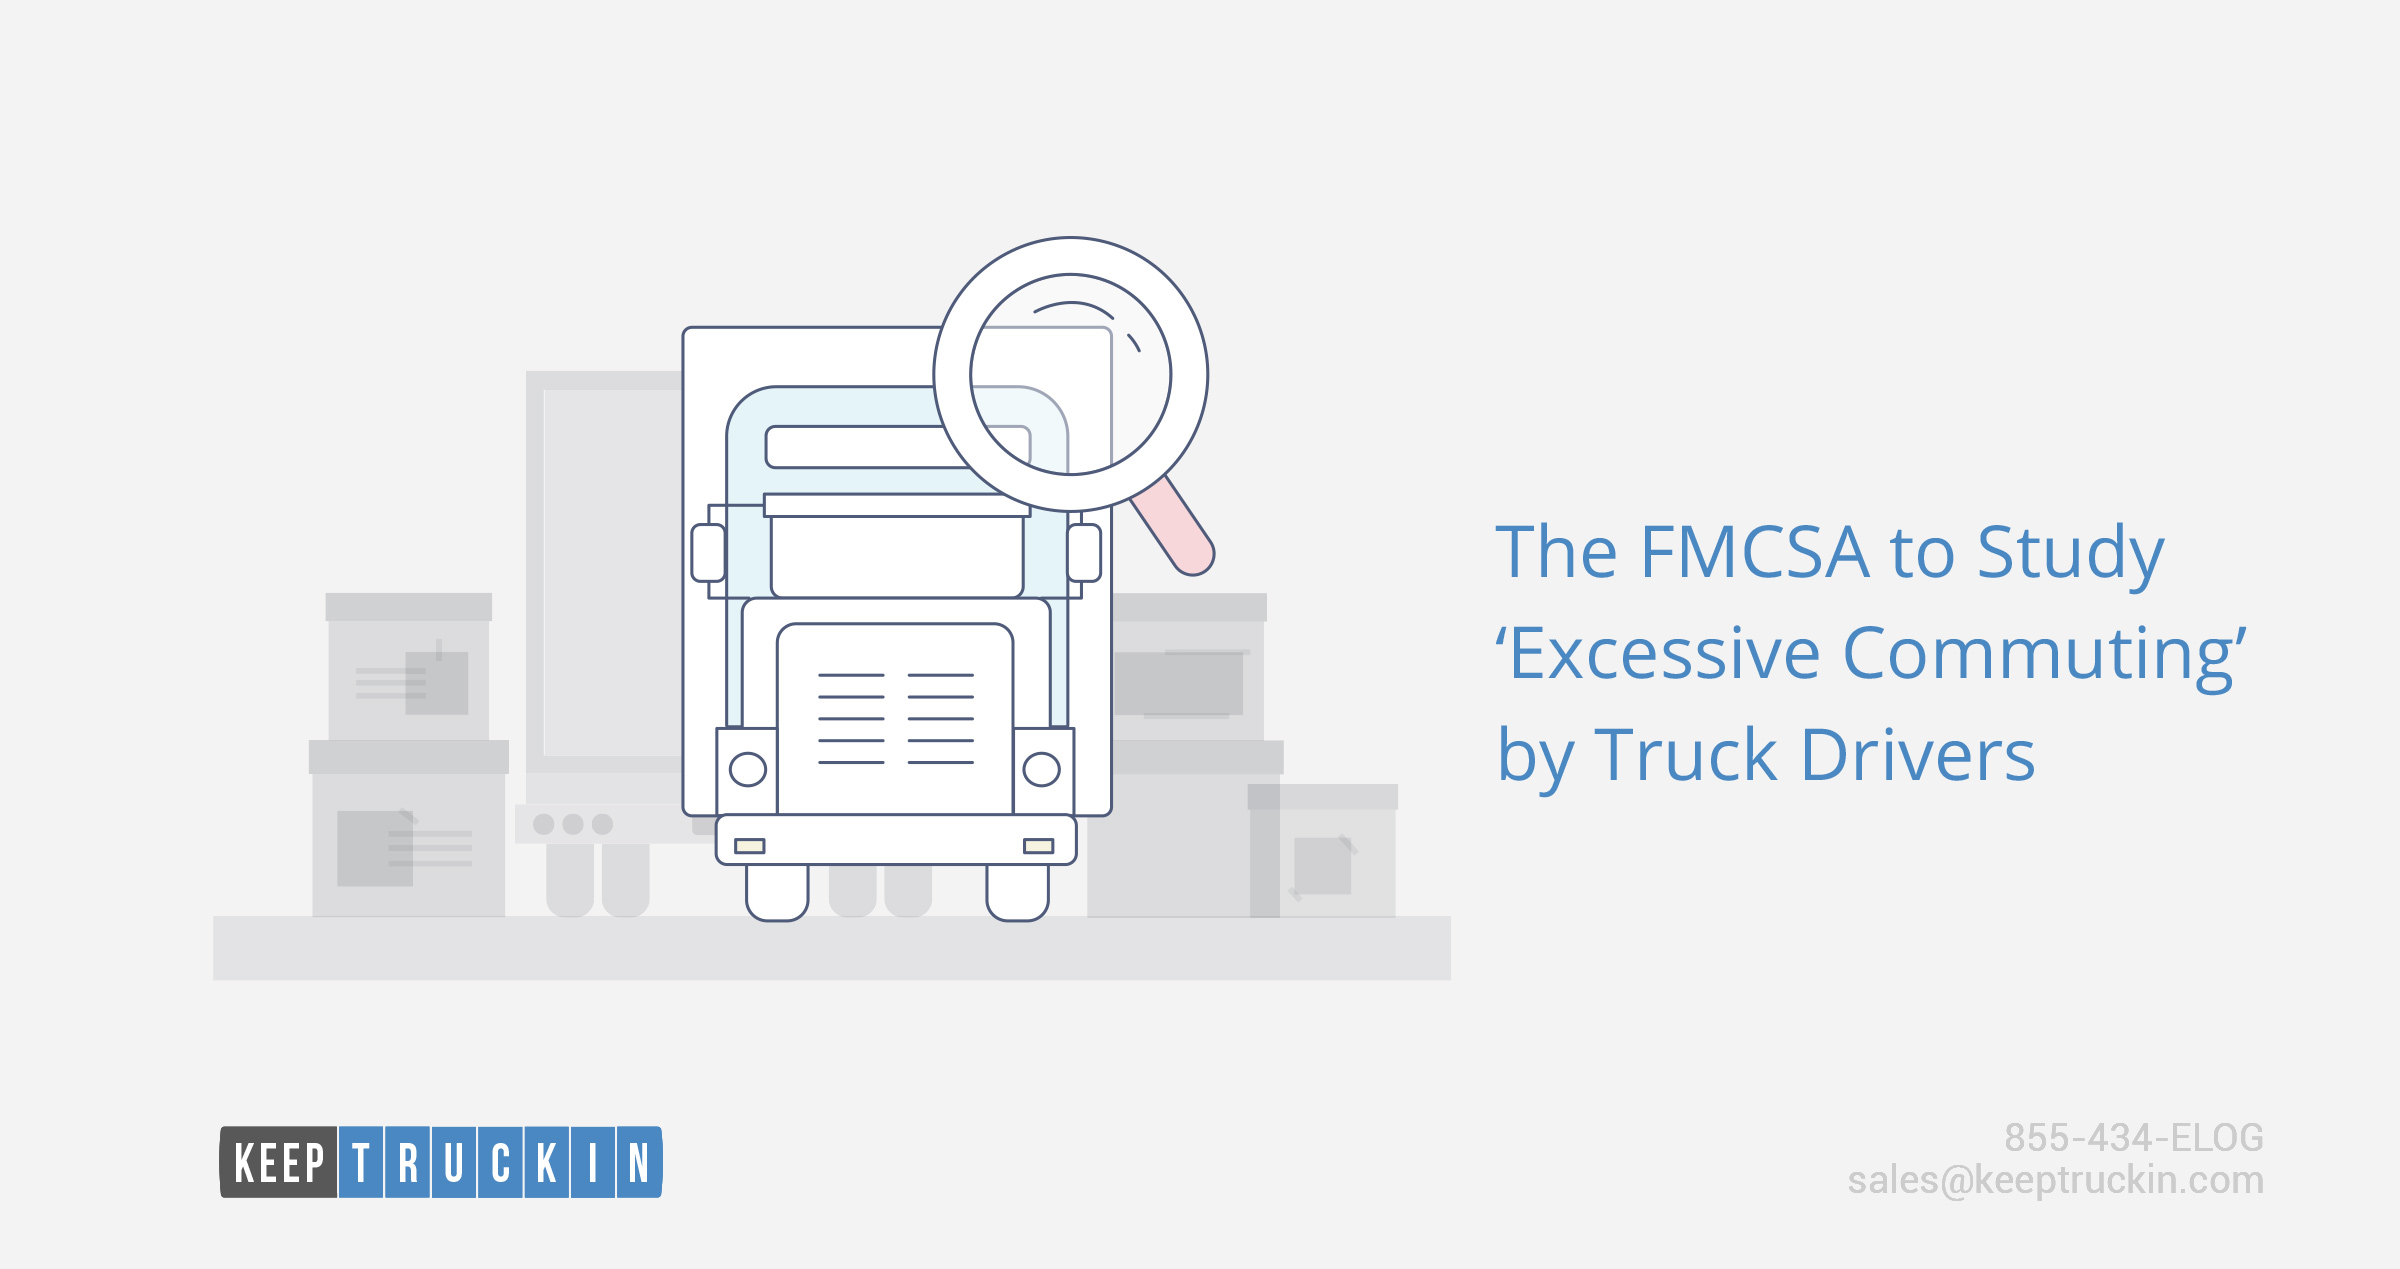 The FMCSA to Study 'Excessive Commuting' by Truck Drivers